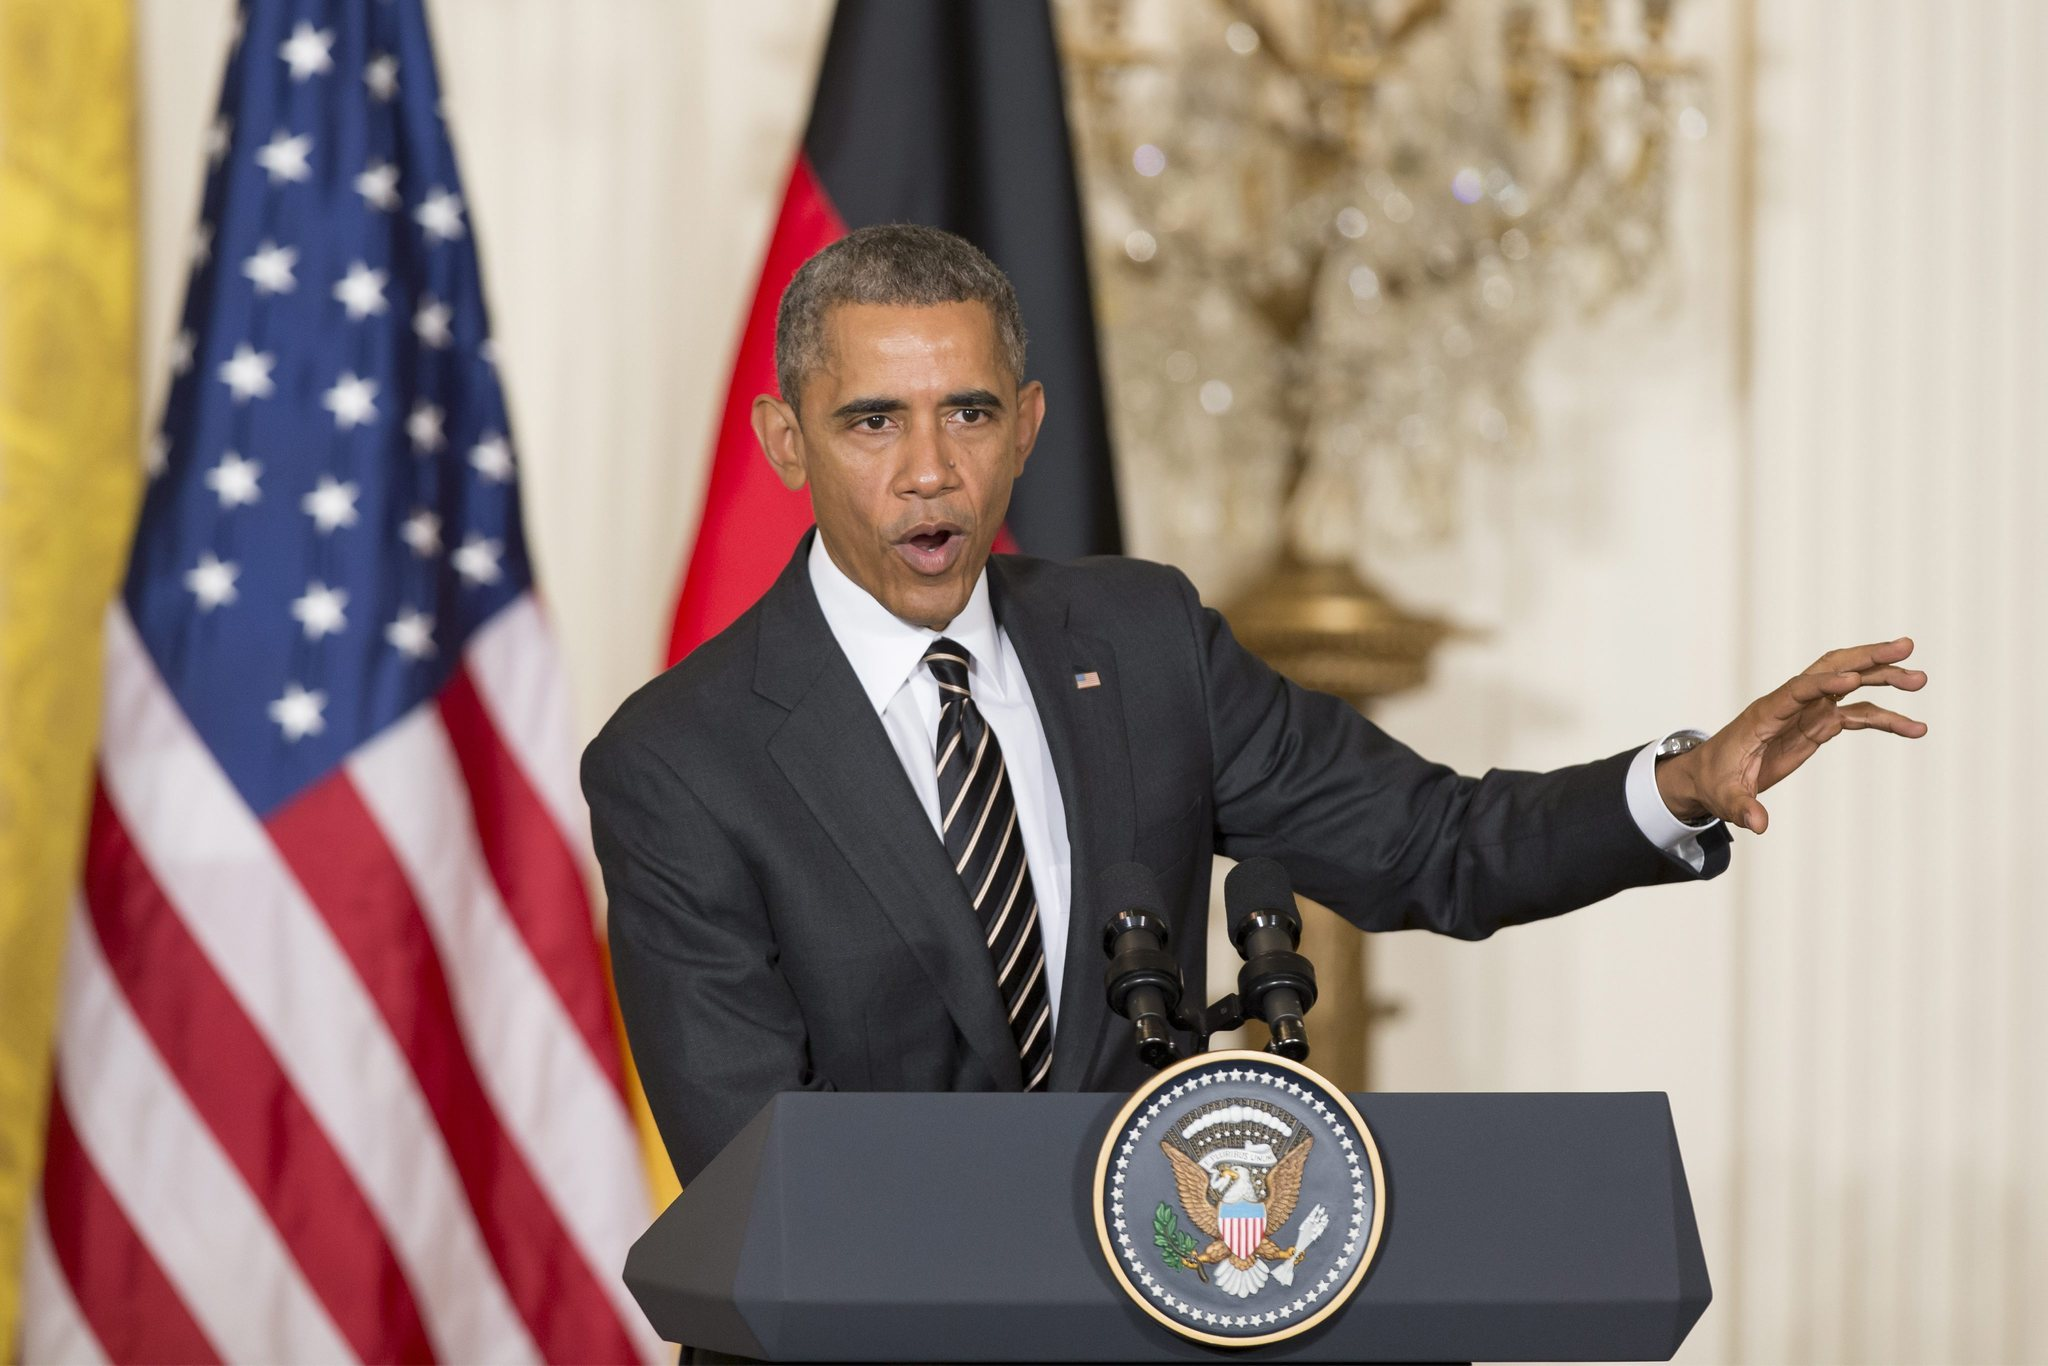 Obama asks for fresh war powers, says Islamic State 'going to lose'